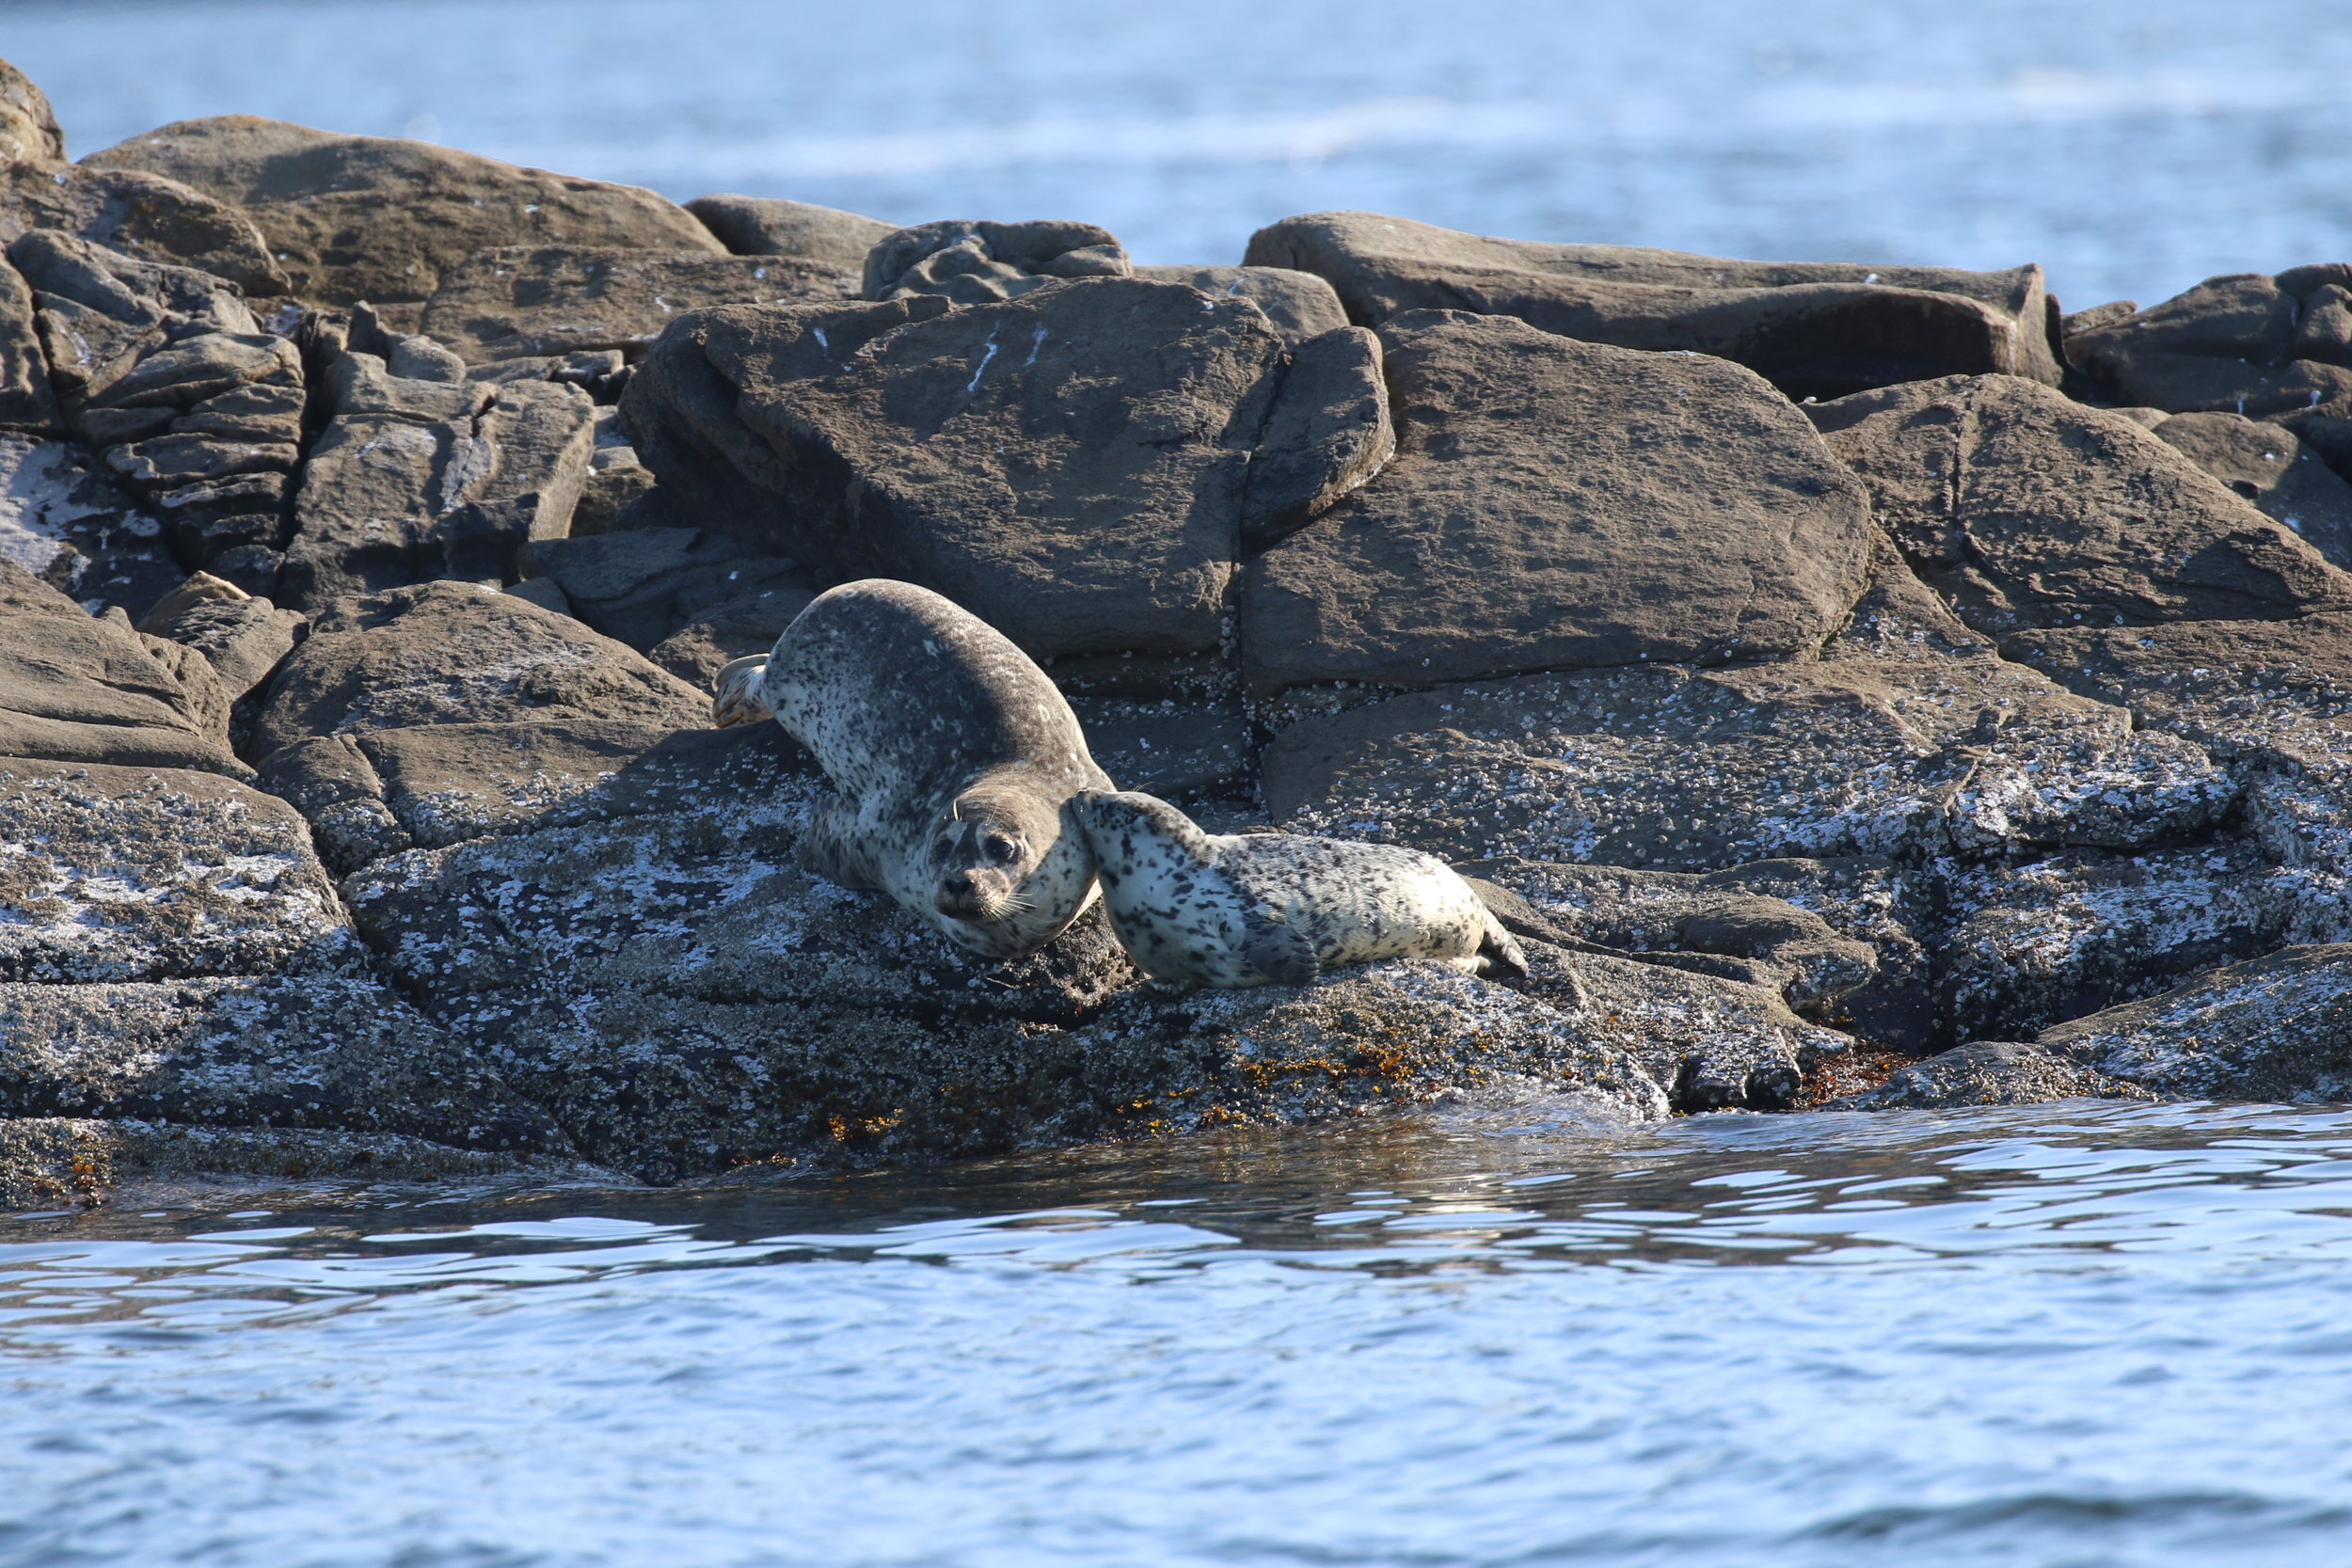 Harbour seal mother and pup. Photo by Ryan Uslu (3:30).